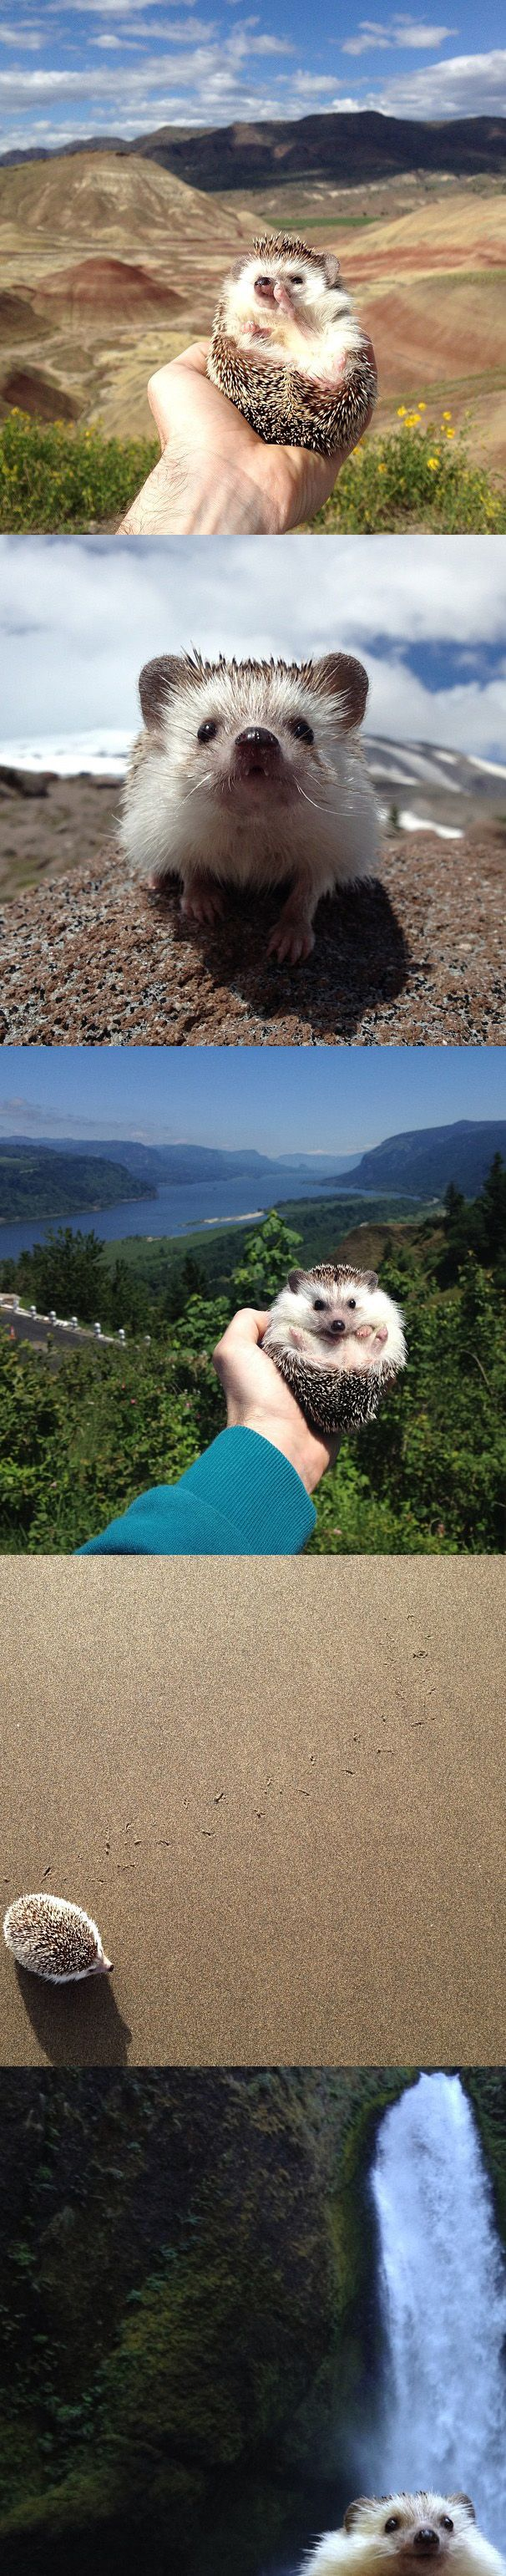 Biddy is a three year old male African Pygmy Hedgehog from Fairview, Oregon that loves to get out and explore. He's travelled far and wide in the United States, and has been on roadtrips and hikes, as well as on summer and winter expeditions.